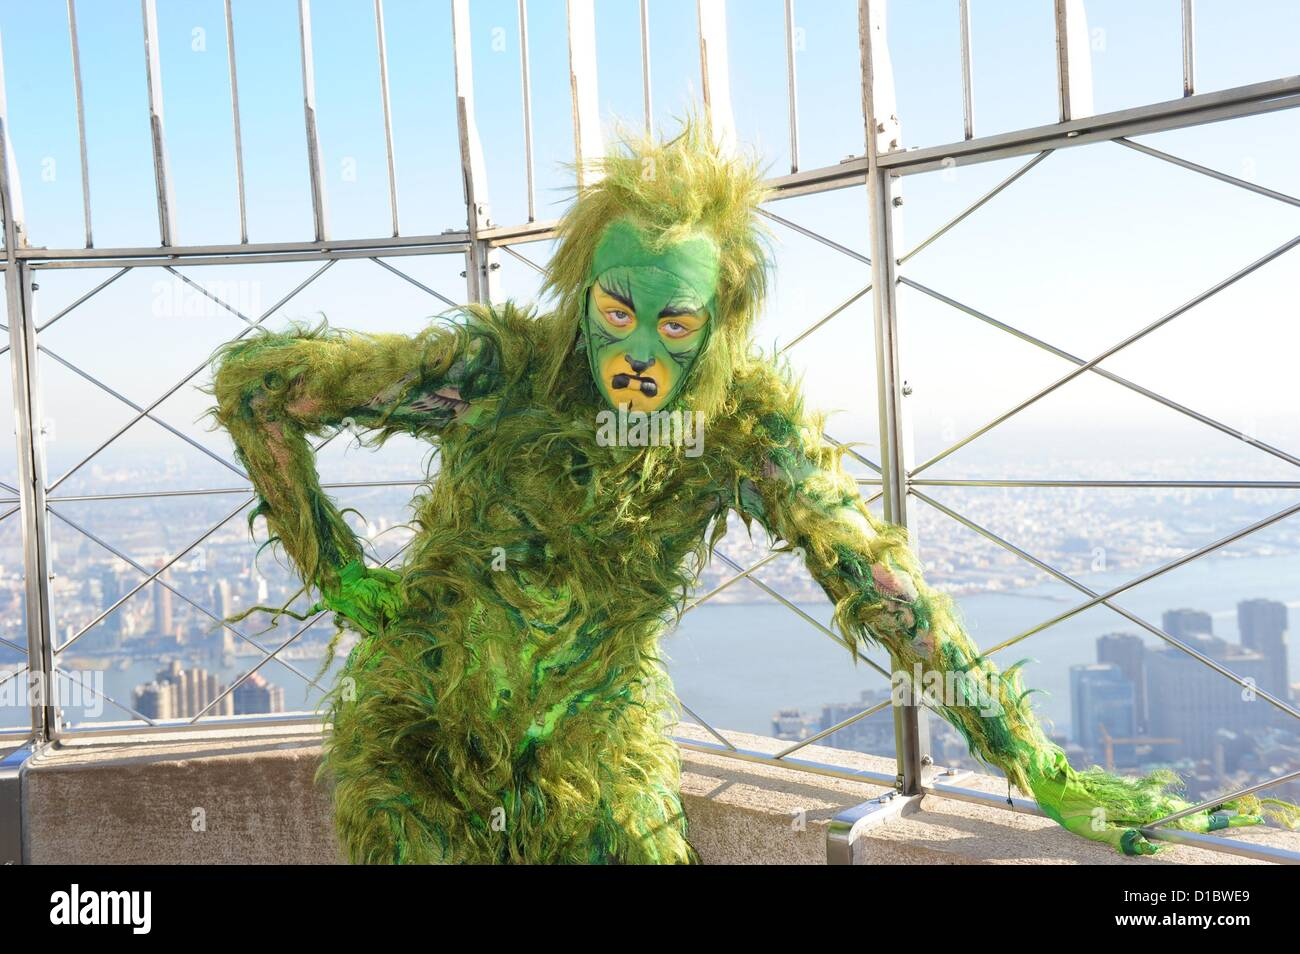 Dec 14 2012 Manhattan New York U S The Grinch Looks Over The Stock Photo Royalty Free